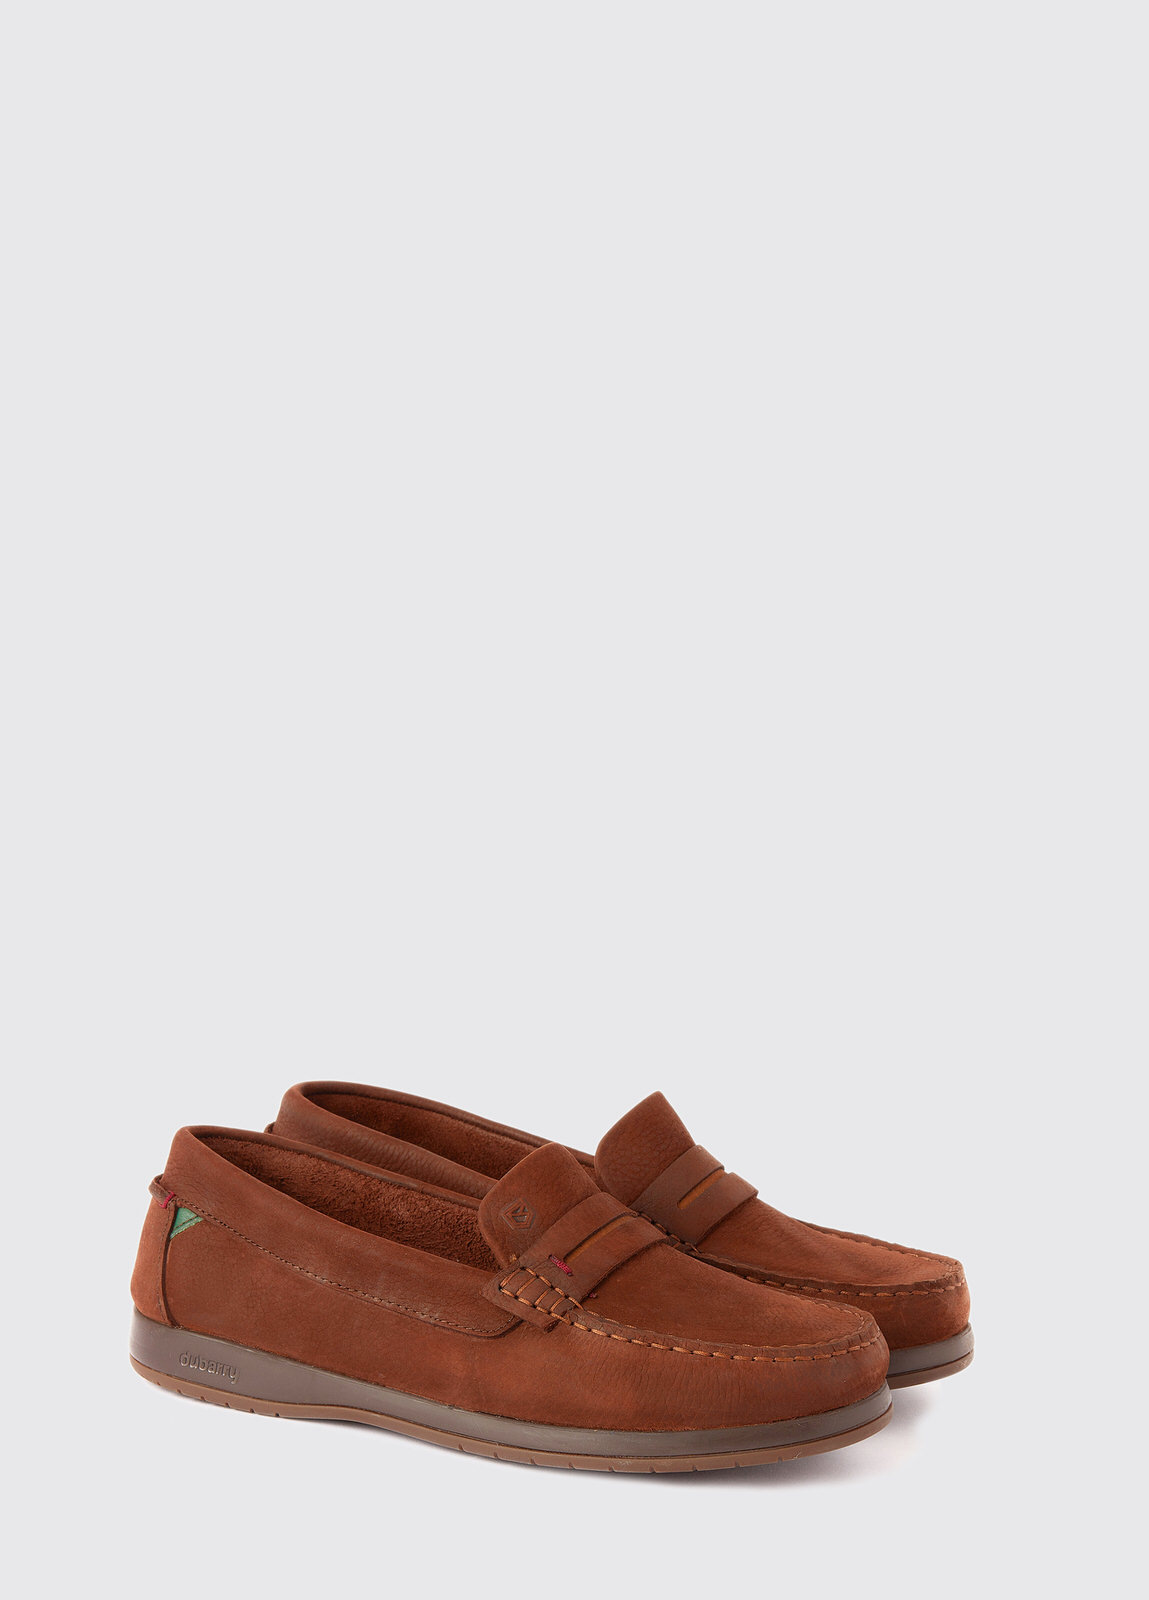 Mizen X LT Deck shoes - Walnut